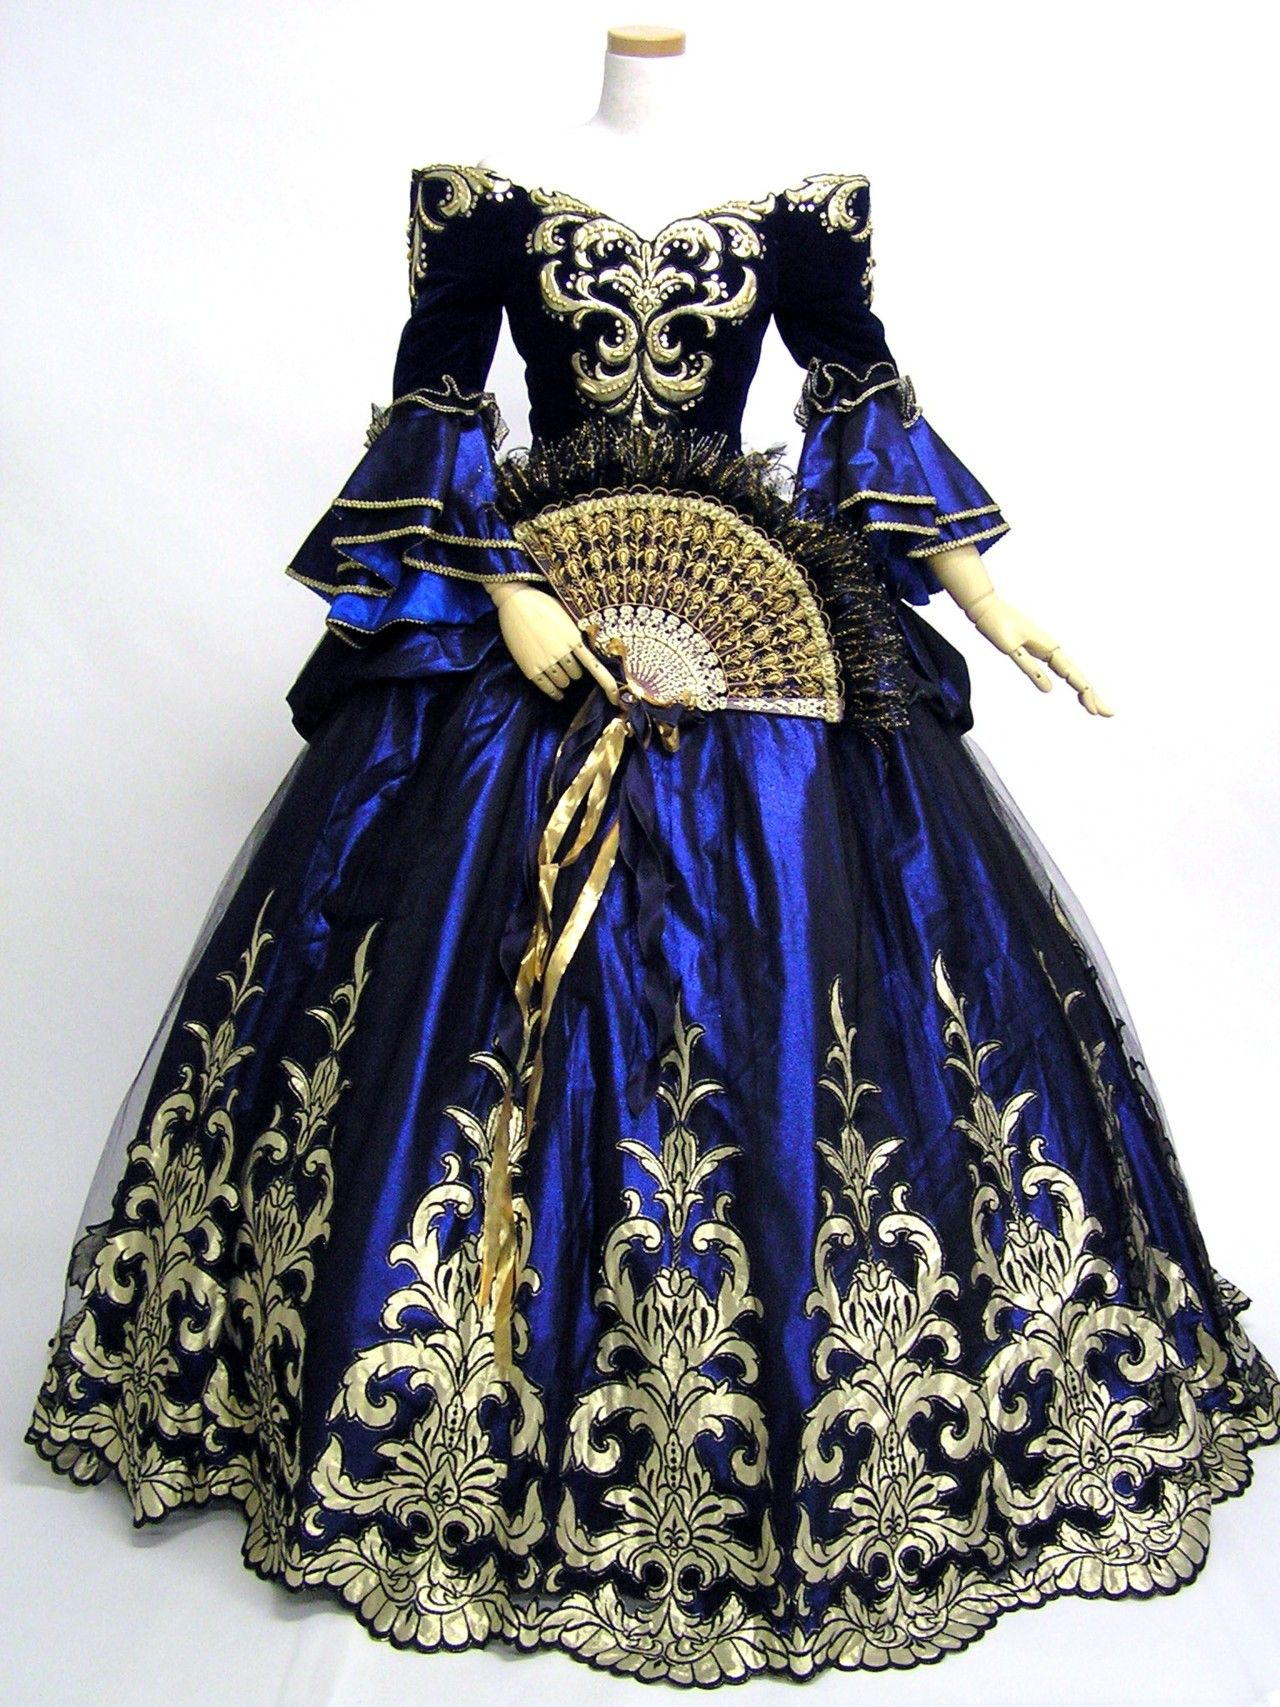 Wow this is so neat looks like something you would wear to a